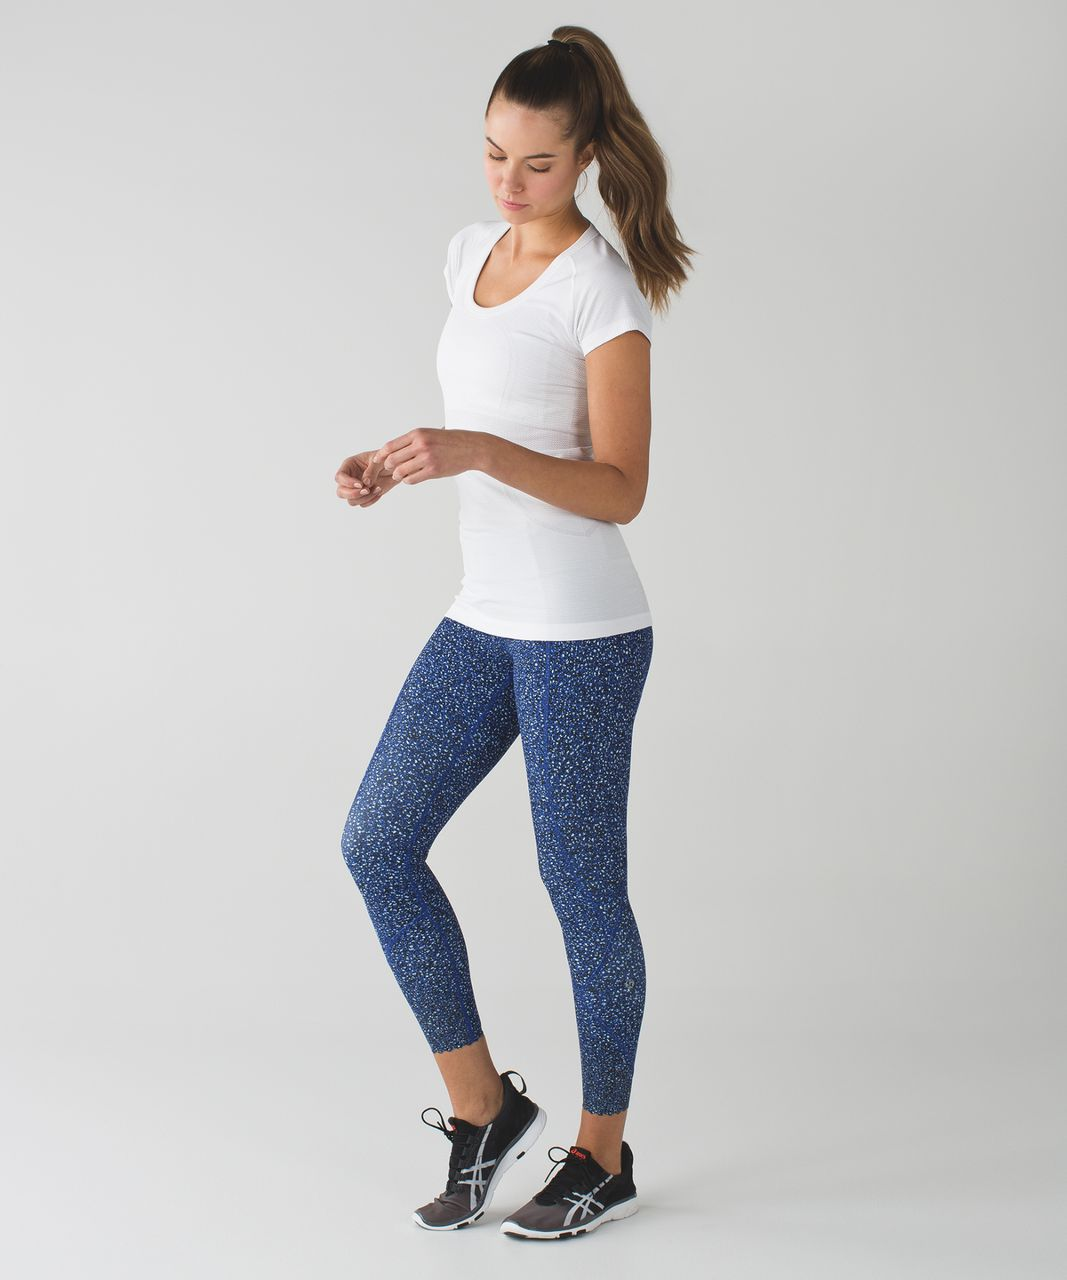 Lululemon Tight Stuff Tight - Simply Shadow Wrap Sapphire Blue Black